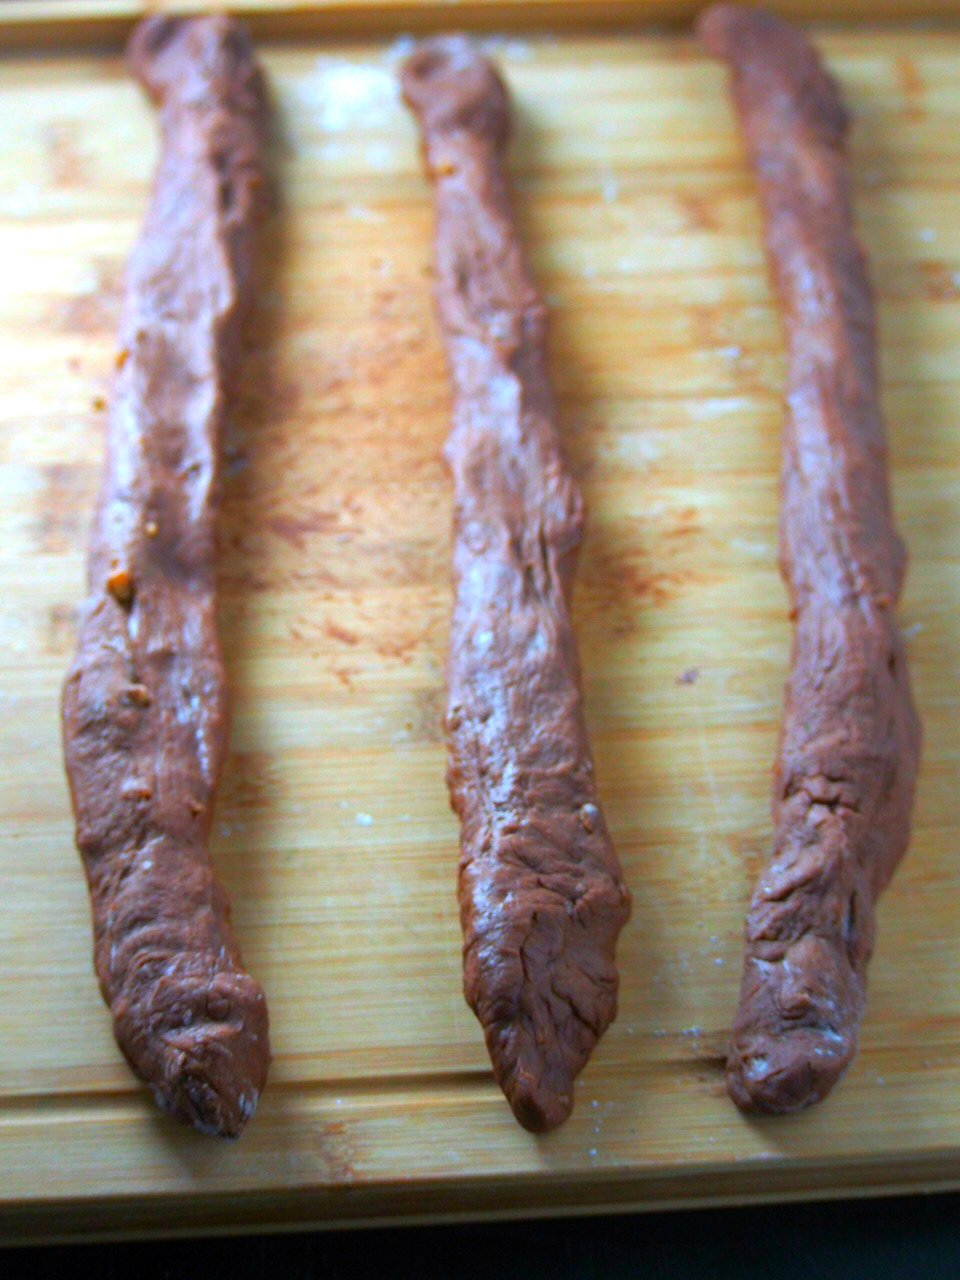 The risen chocolate dough divided into three portions then shaped into 20 inches ropes.